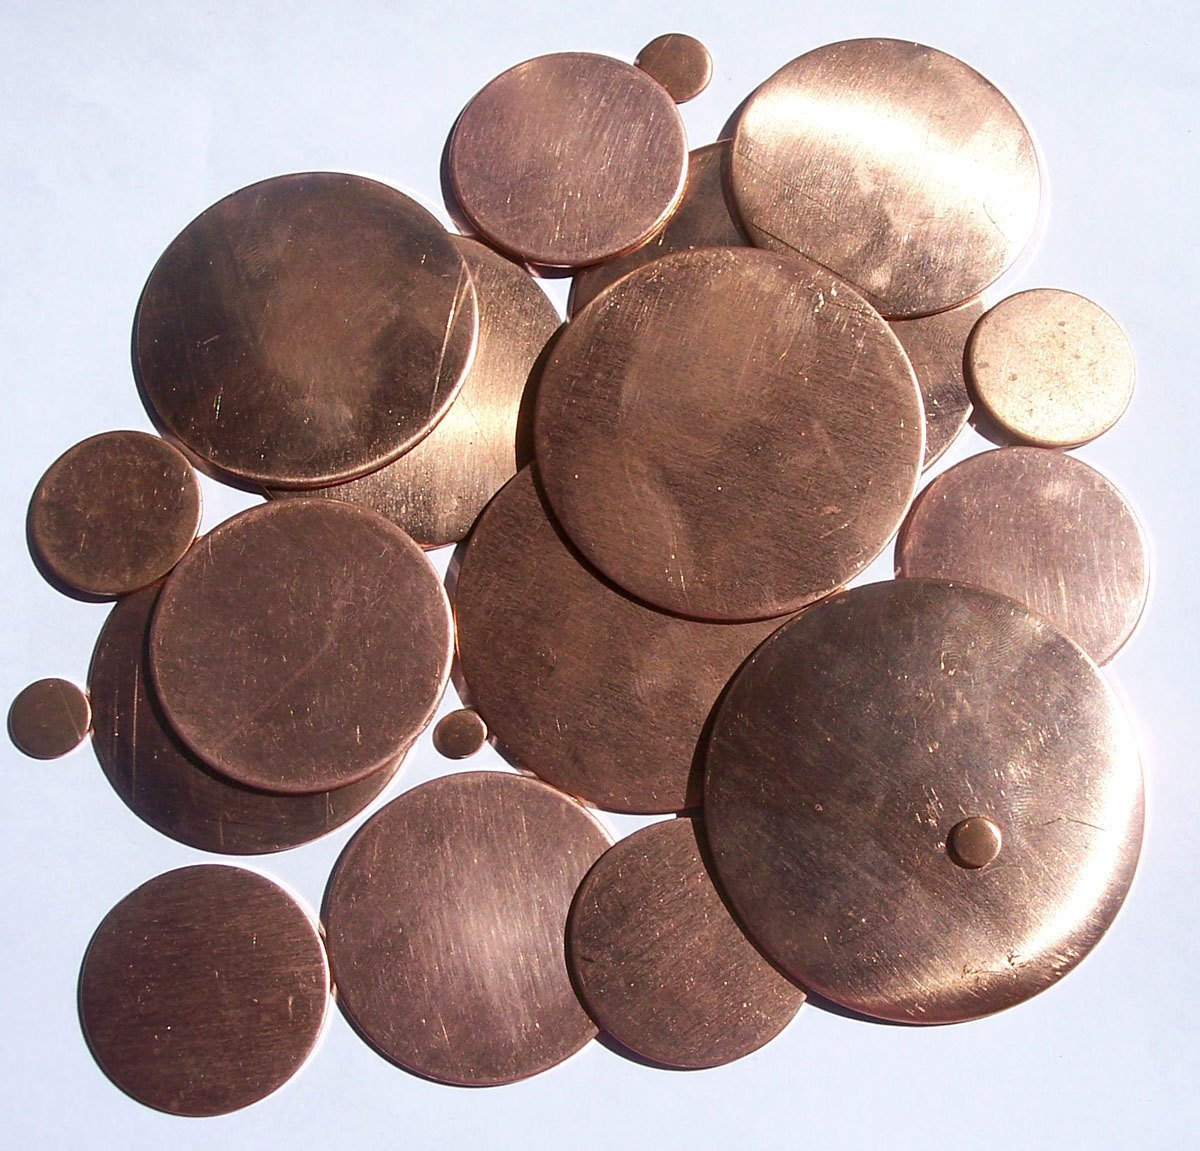 Buy Copper Blank Disc 20g 15mm Cutout for Enameling Stamping Texturing - Metalworking Supply - 8 pieces online